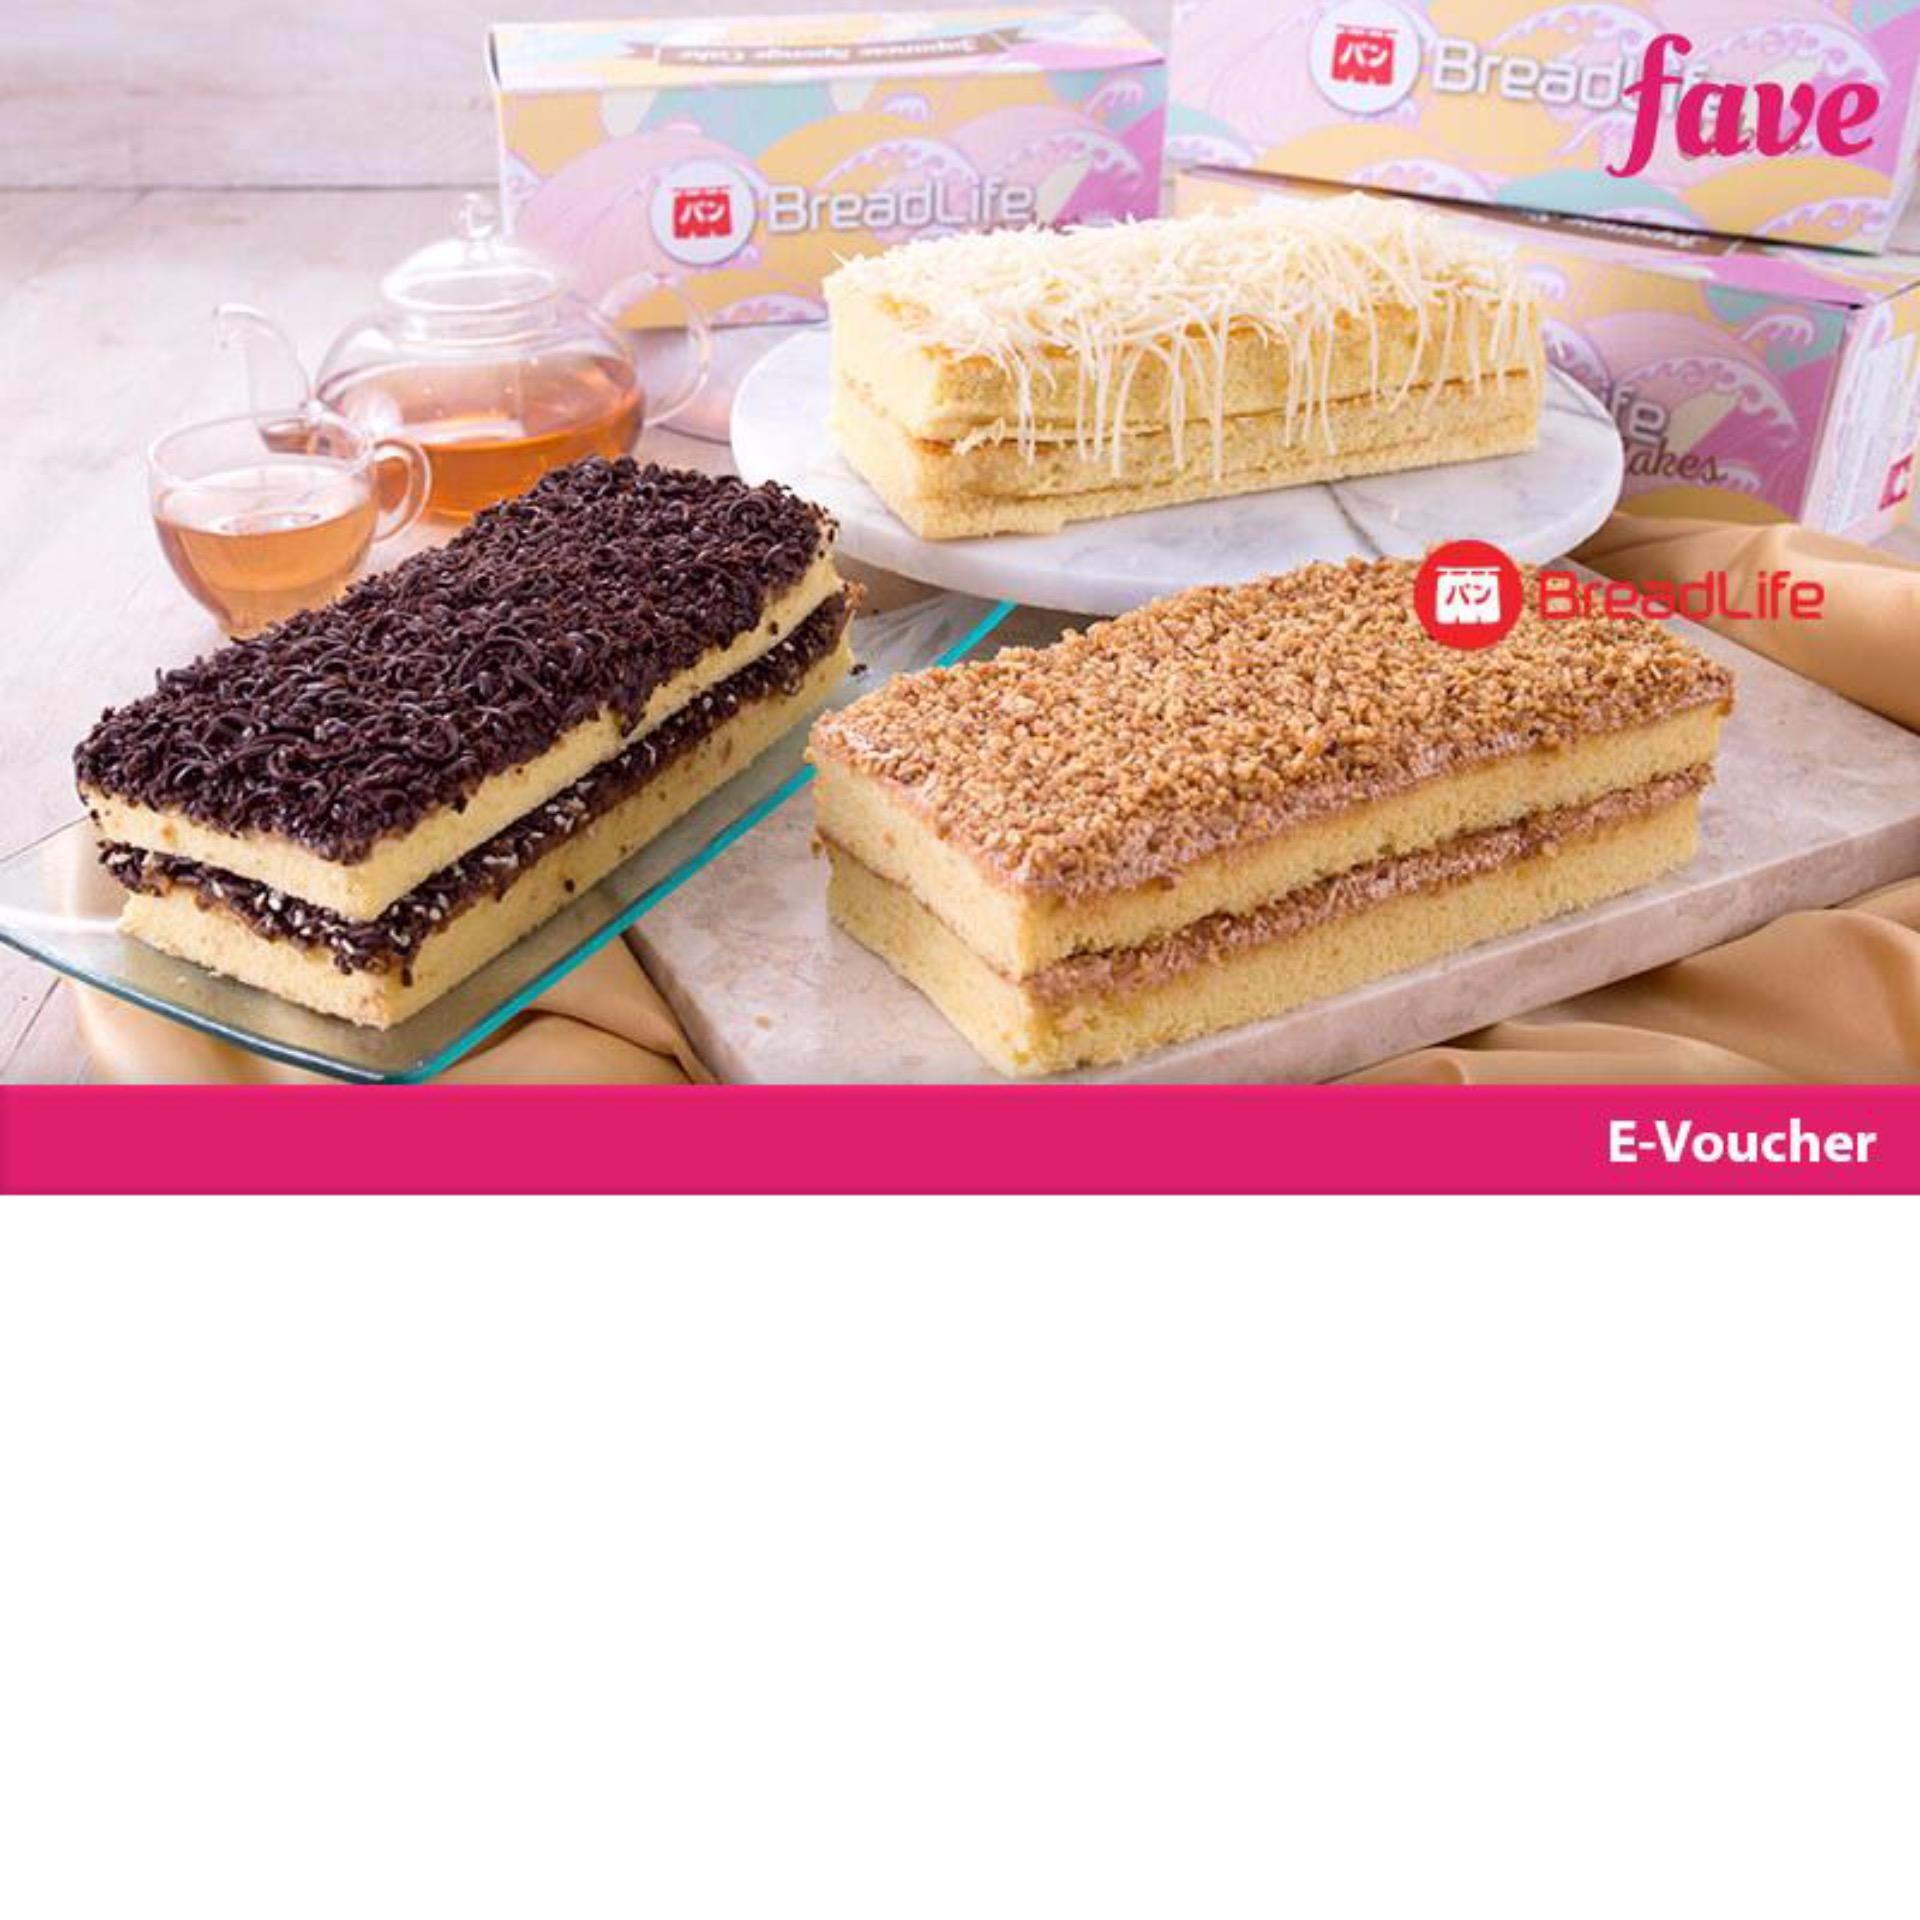 Breadlife Paket 2 Japanese Sponge Cake By Fave Indonesia.